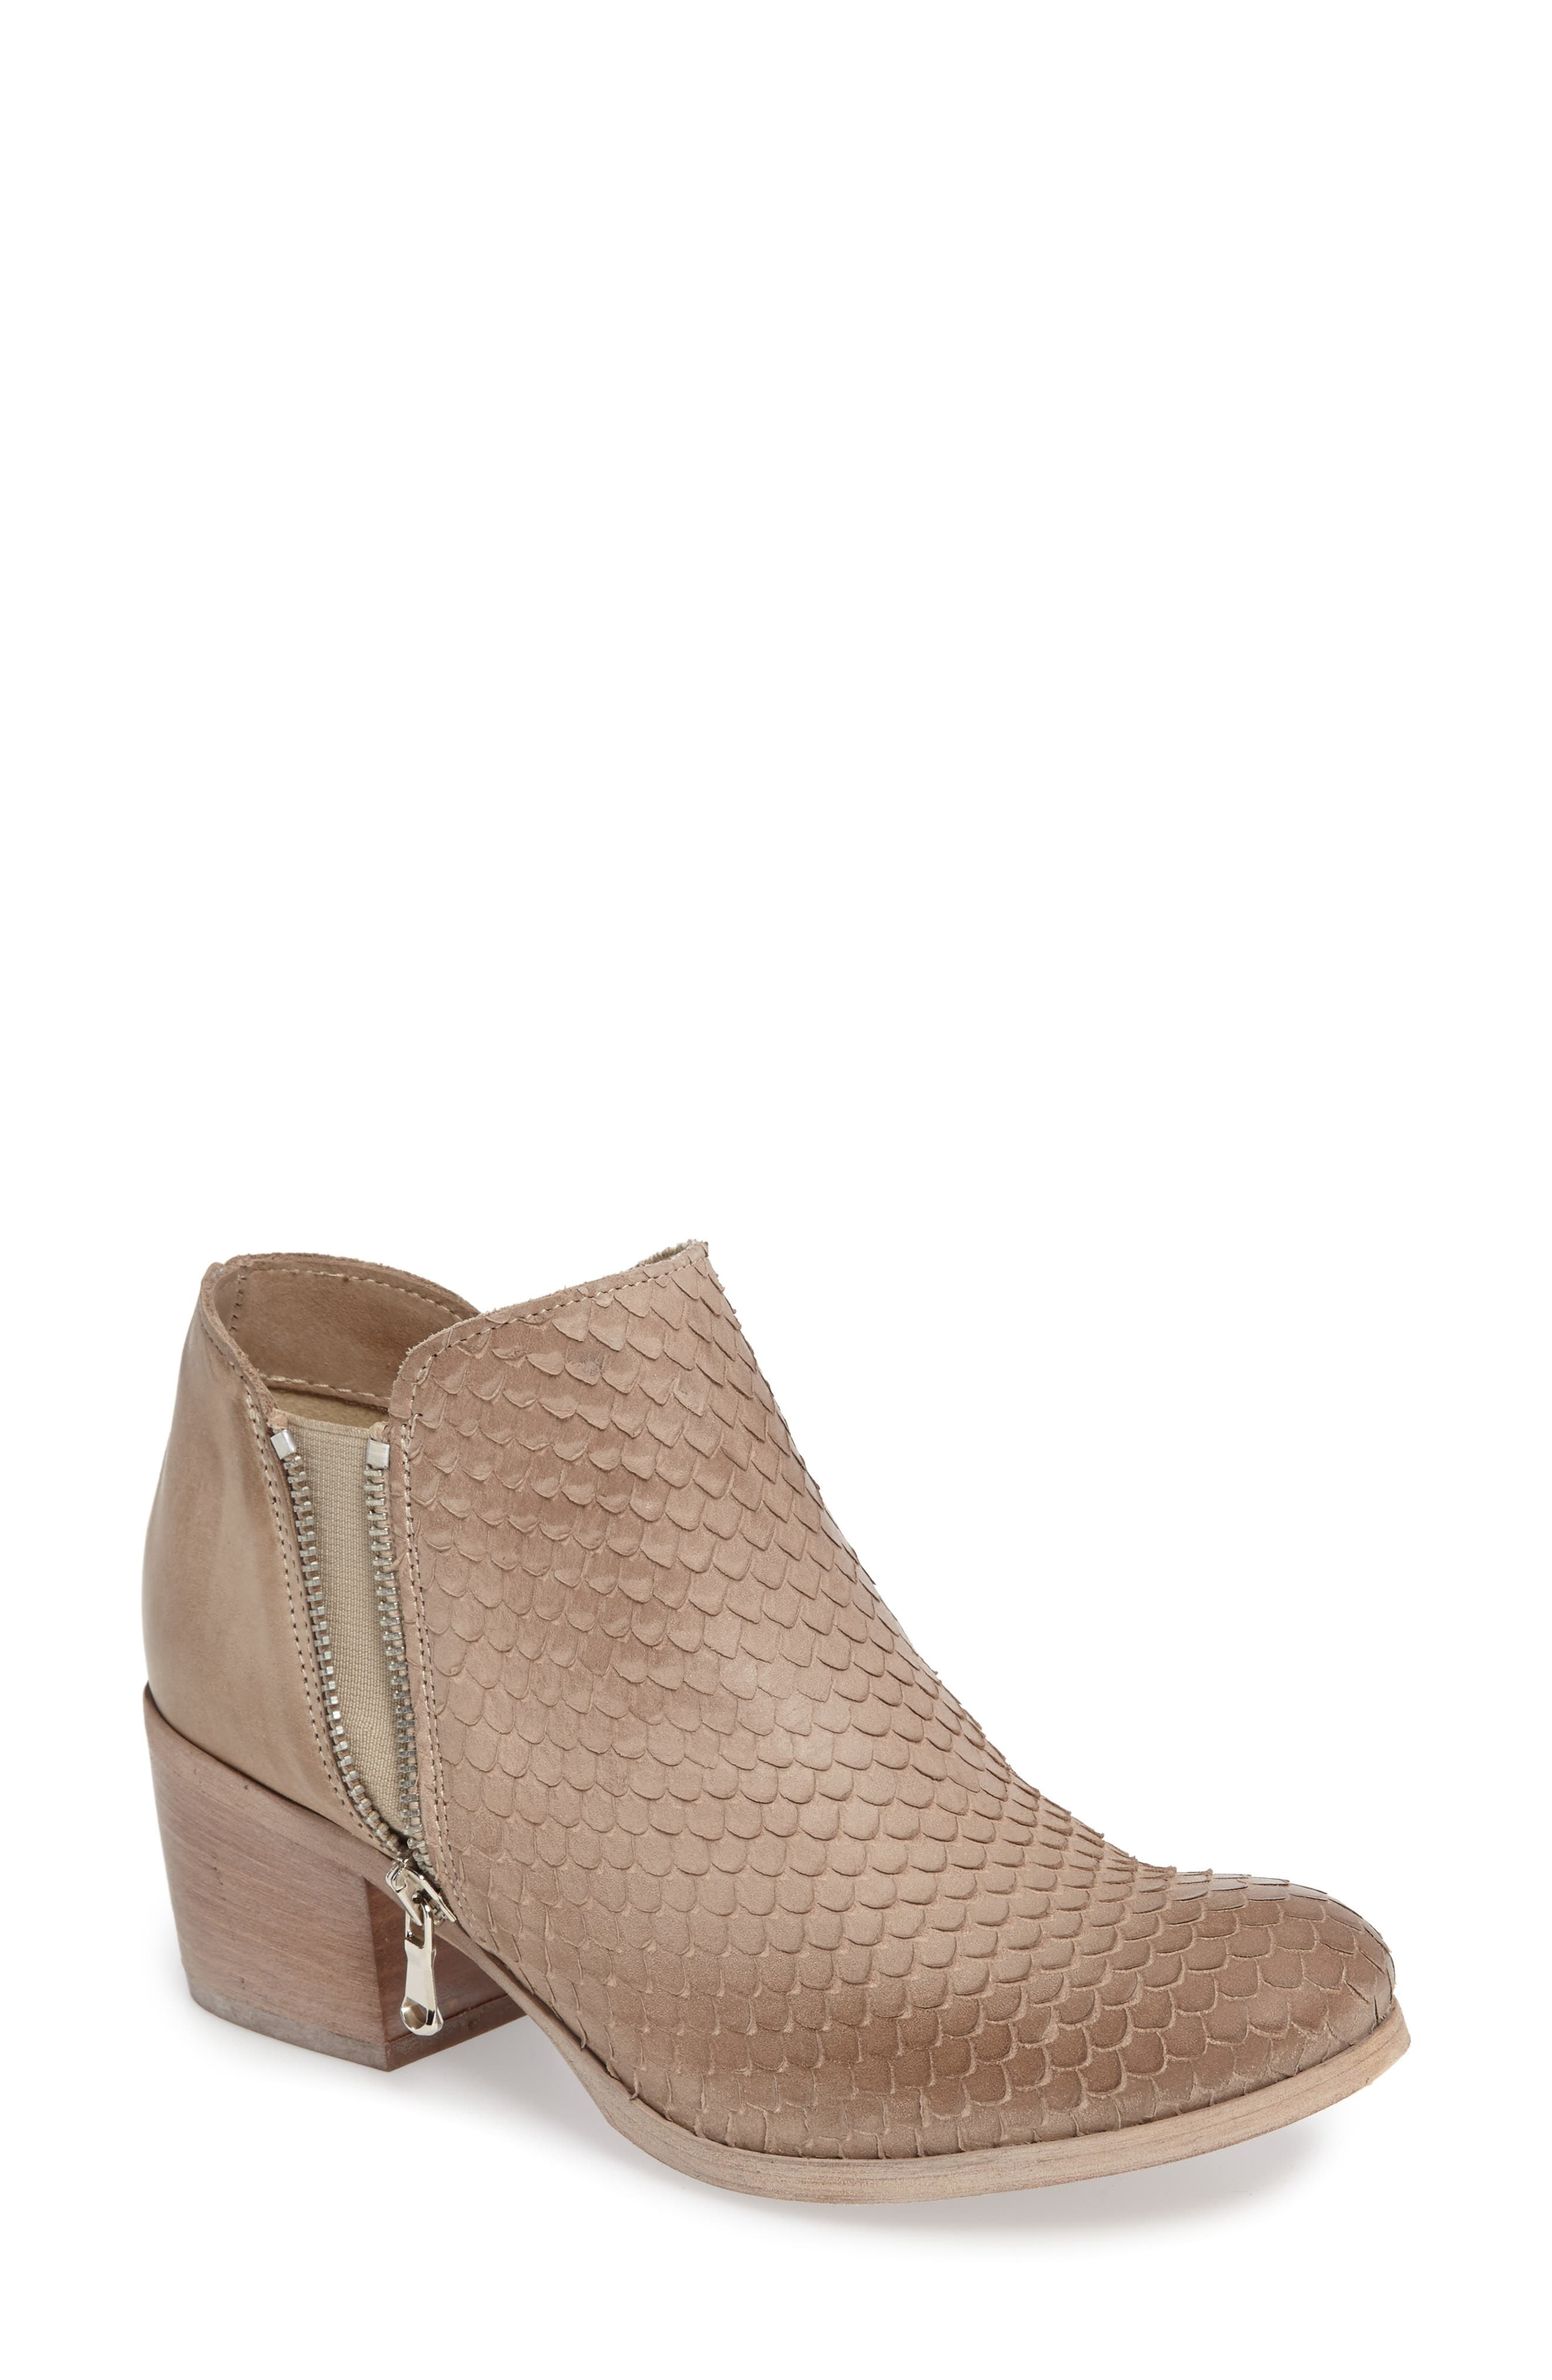 Cher Snake Embossed Bootie,                             Main thumbnail 1, color,                             272